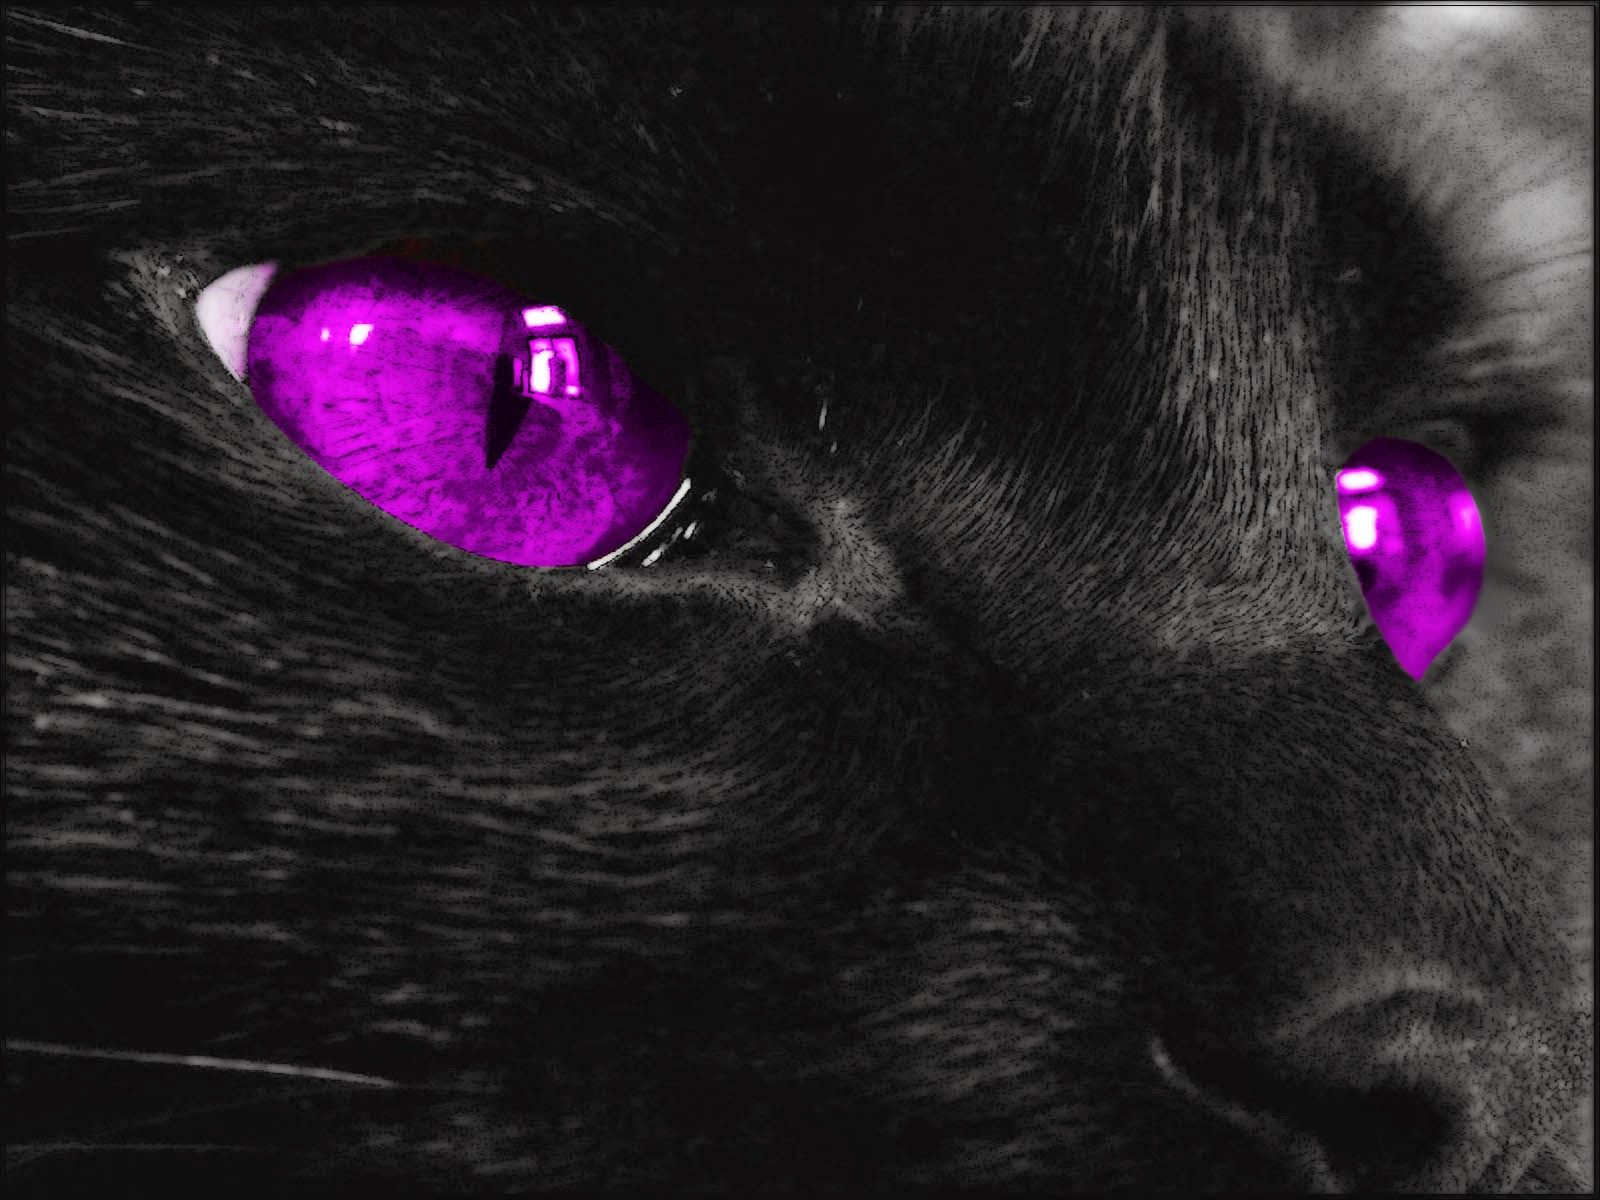 Black Cat With Pink Scary Eyes: Black Cats With Colored Eyes